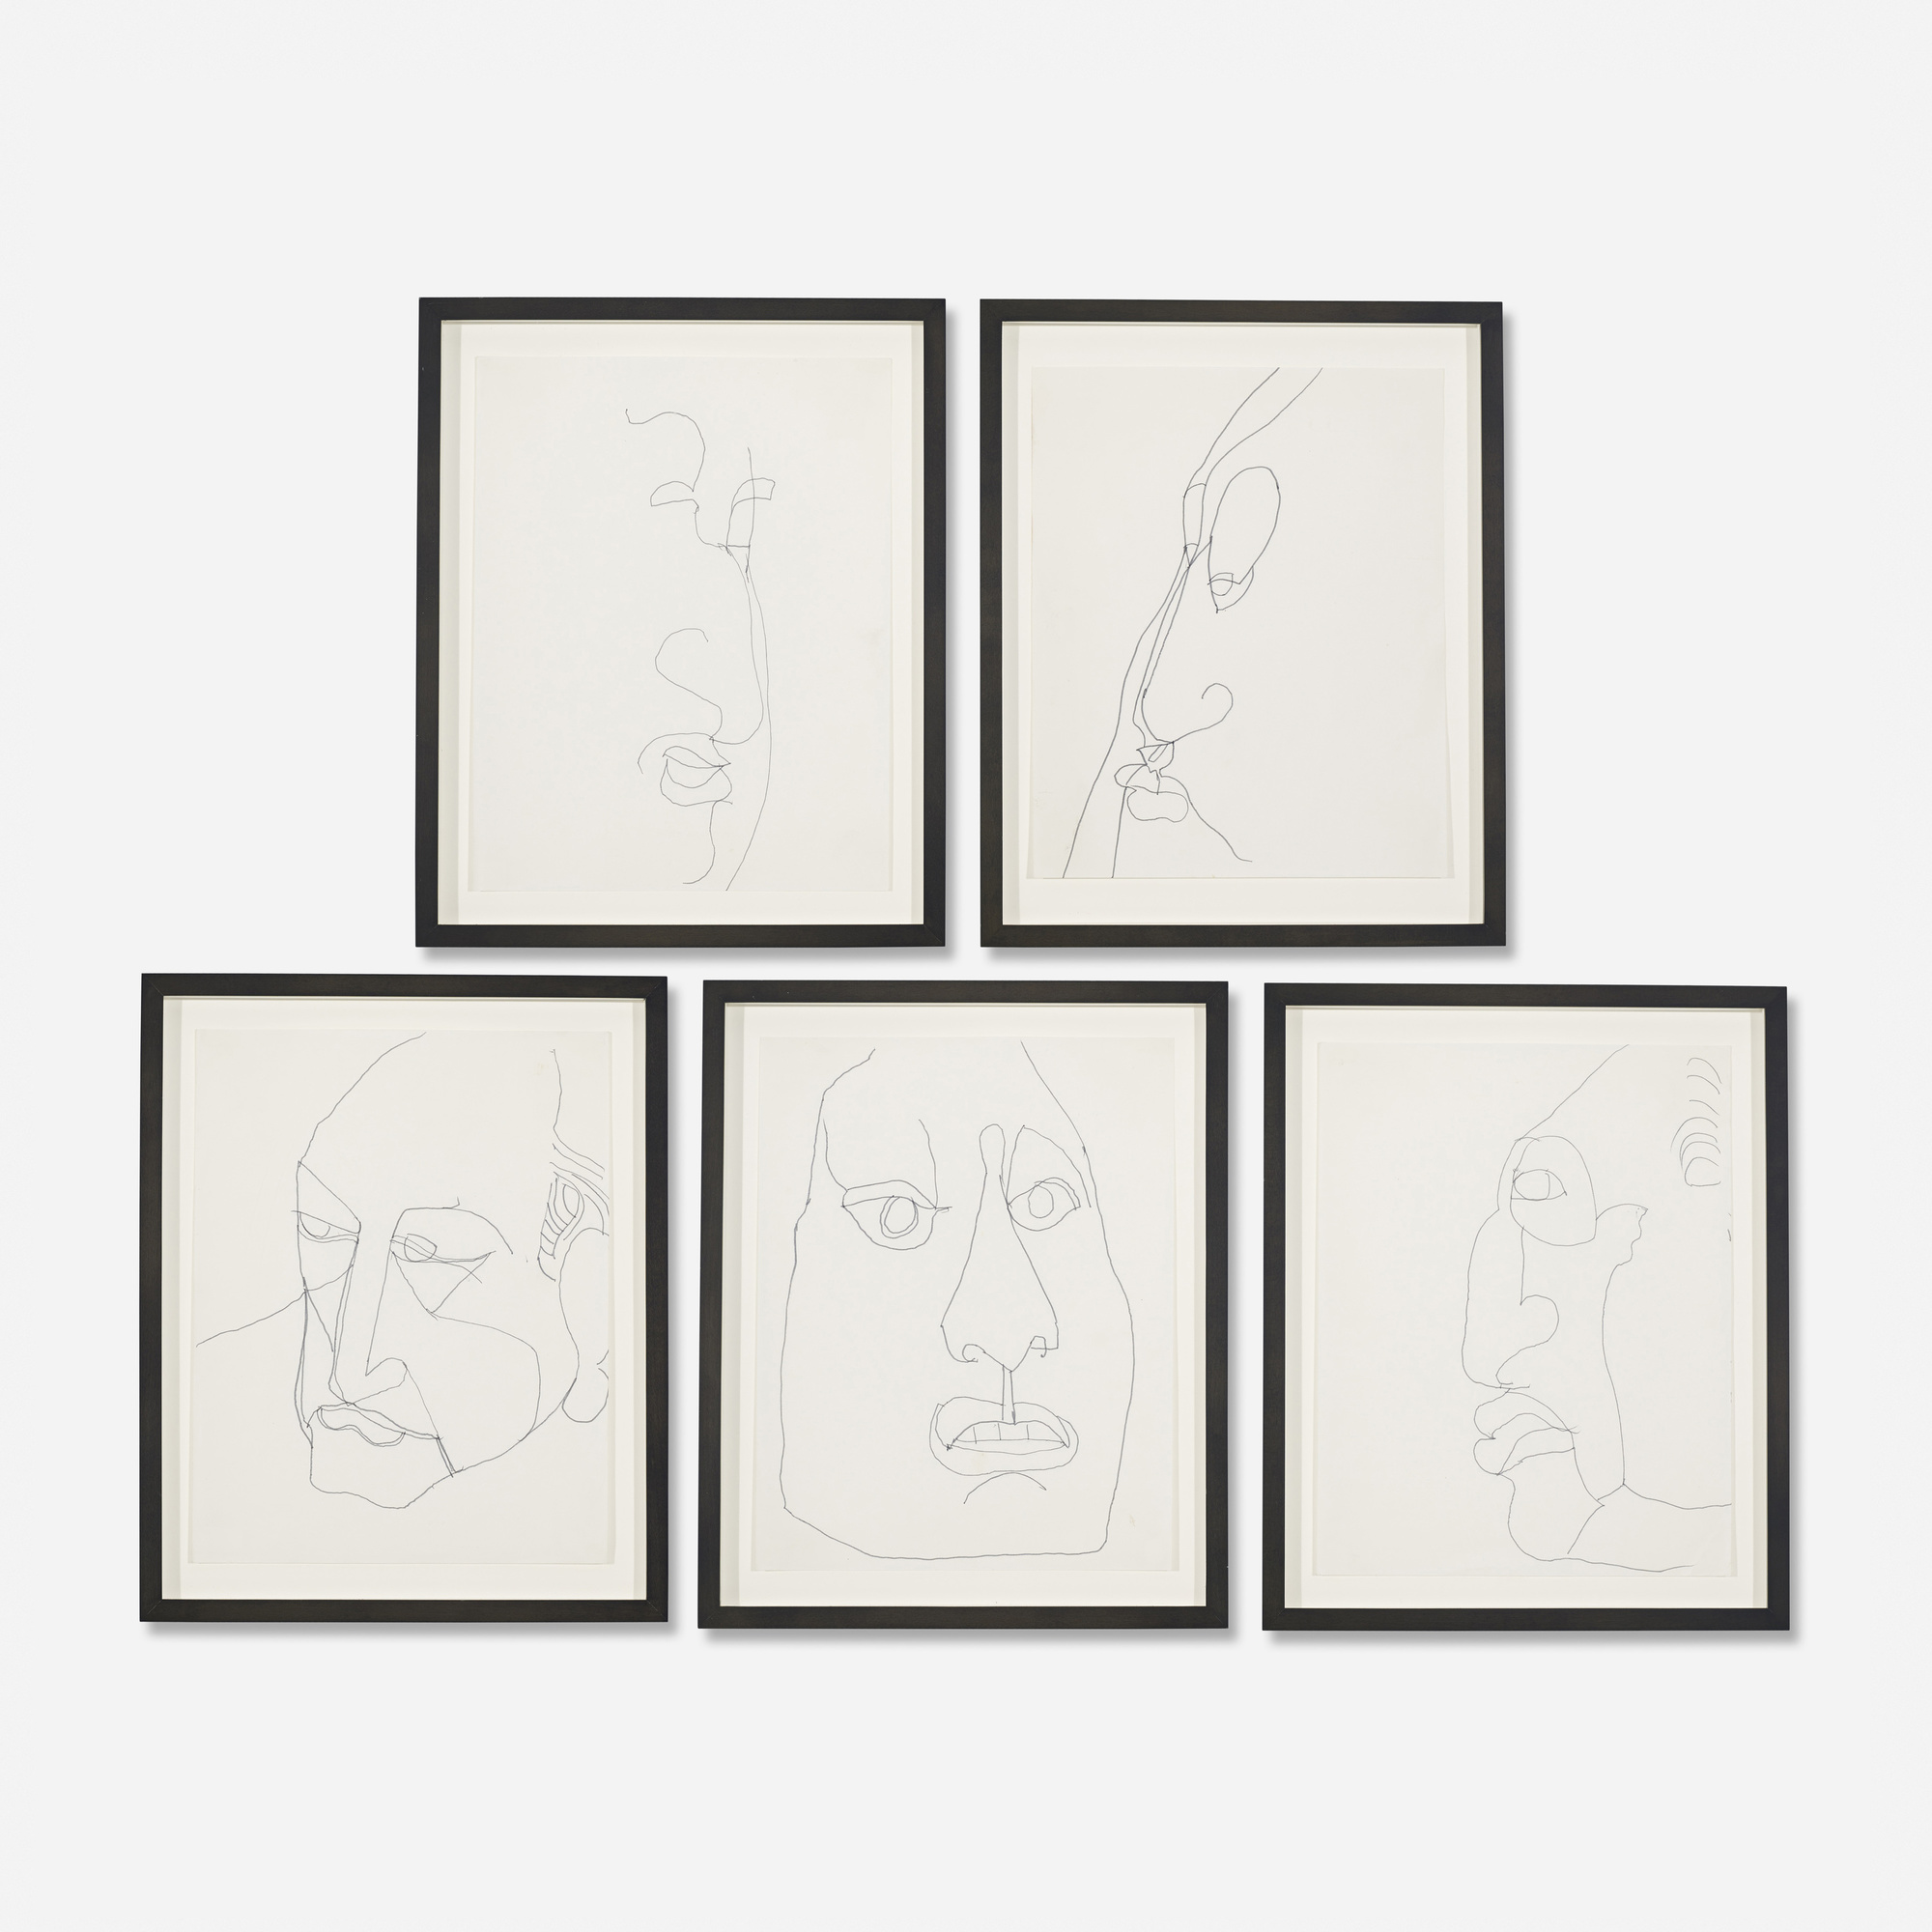 294: French / Untitled (five works) (1 of 2)